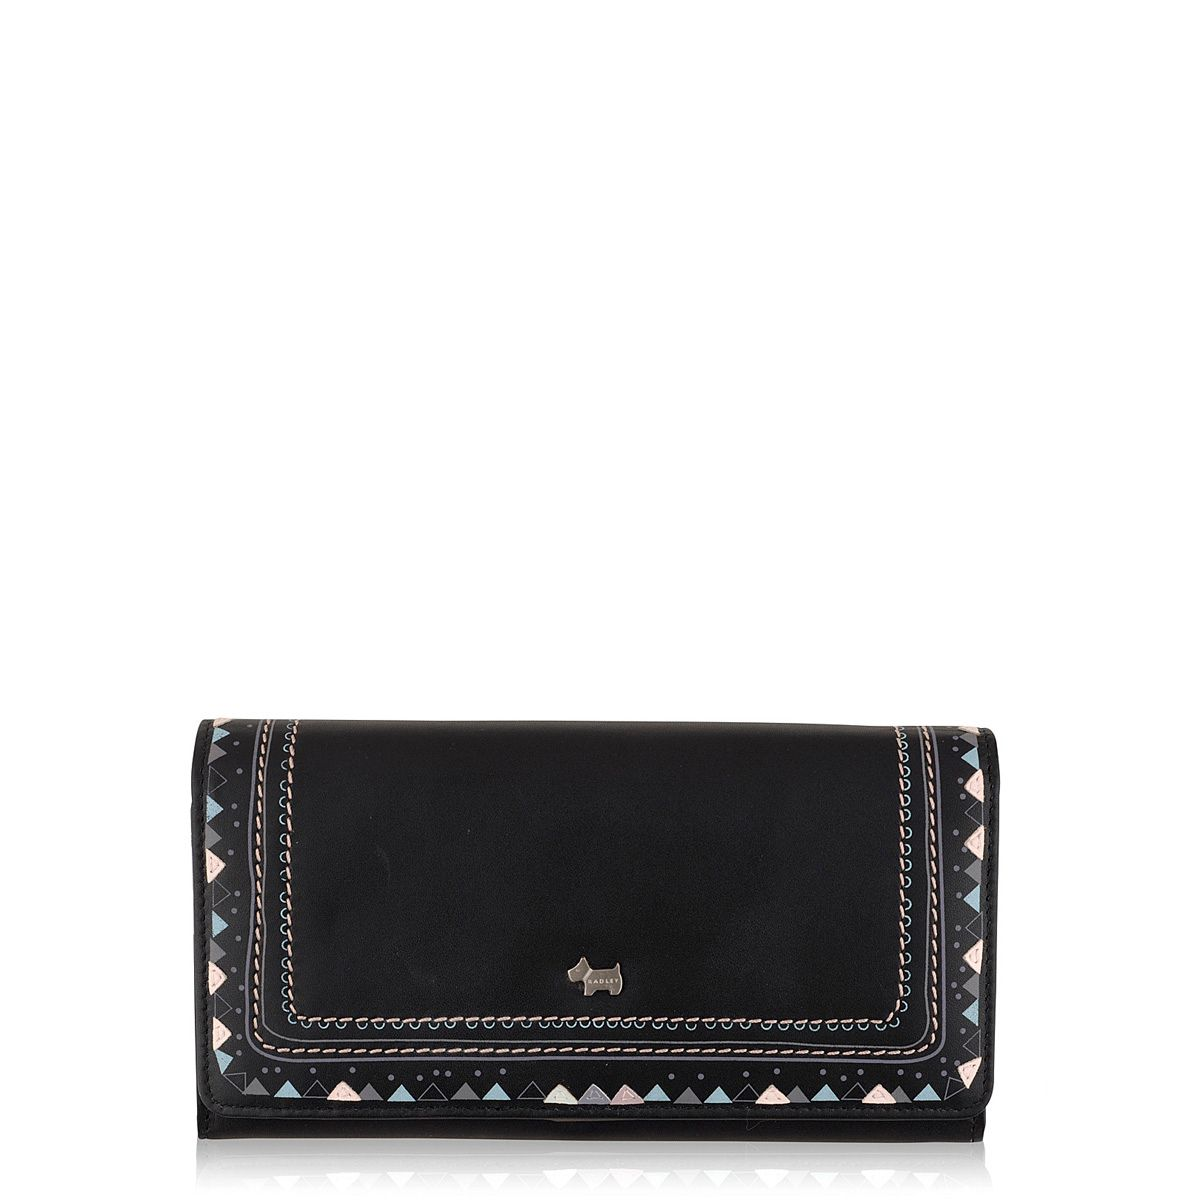 Eyre black large flapover purse